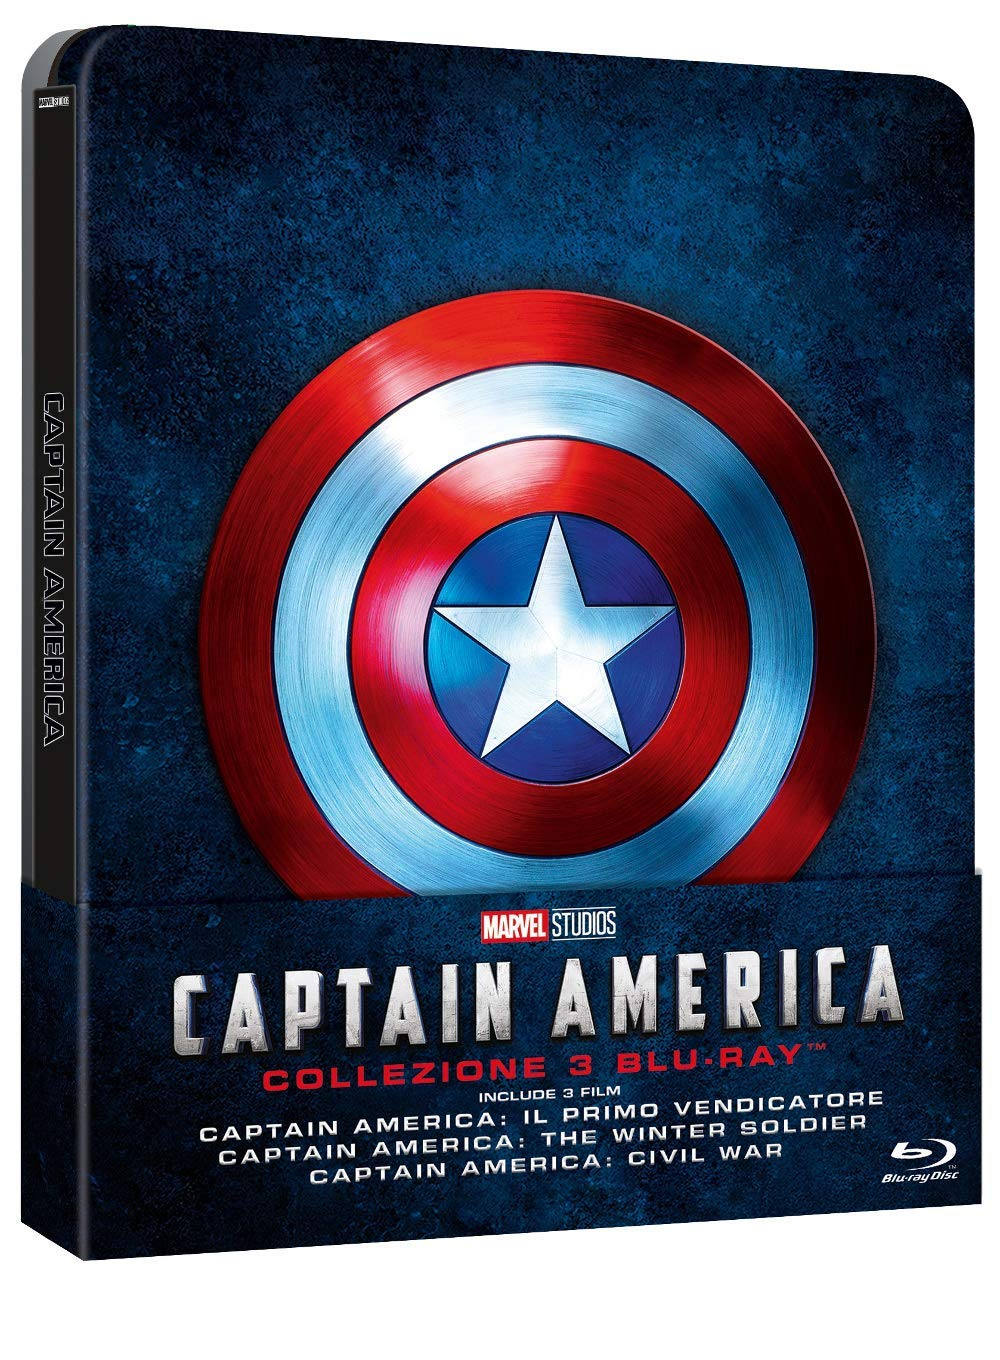 COF.CAPTAIN AMERICA TRILOGY (3 BLU-RAY) (STEELBOOK)